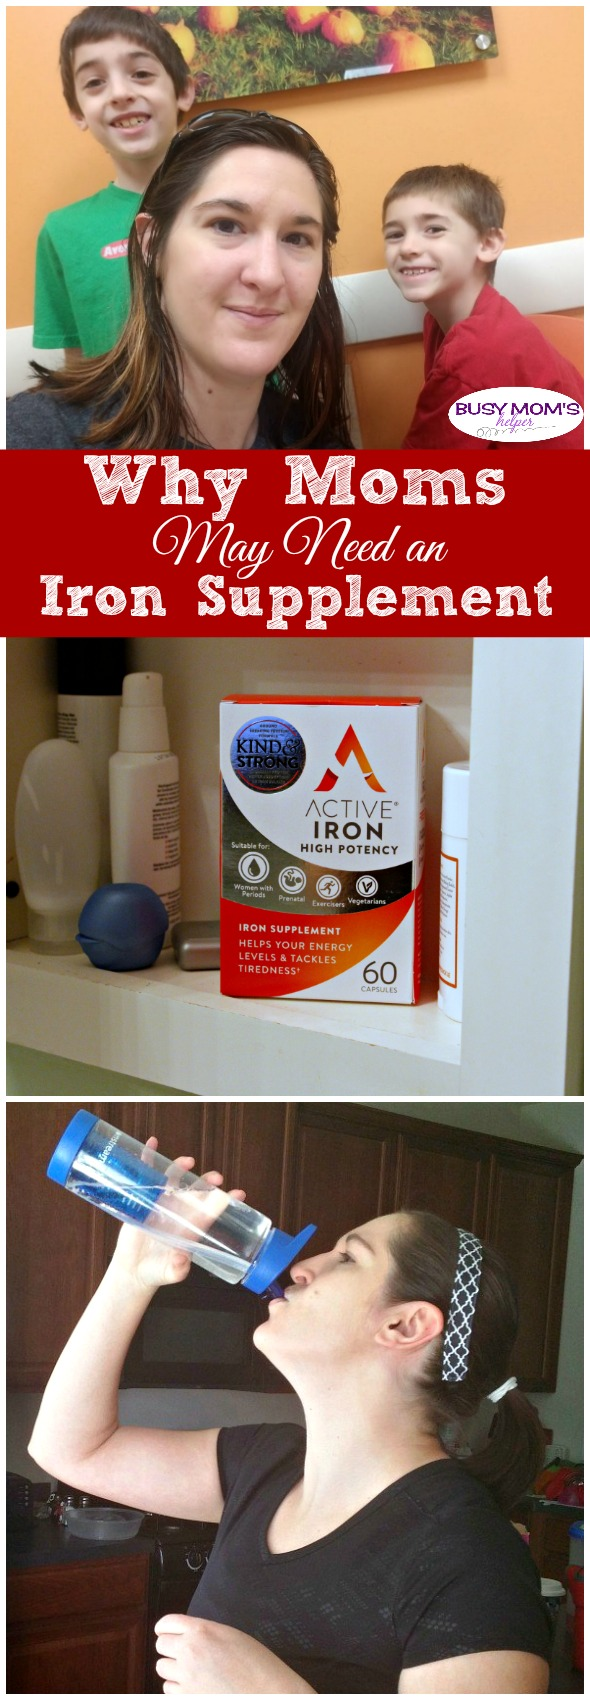 Why Moms May Need an Iron Supplement / Ways to get more energy as a mom #AD #Health #MomHealth #GetHealthy #WomensHealth #ActiveIron